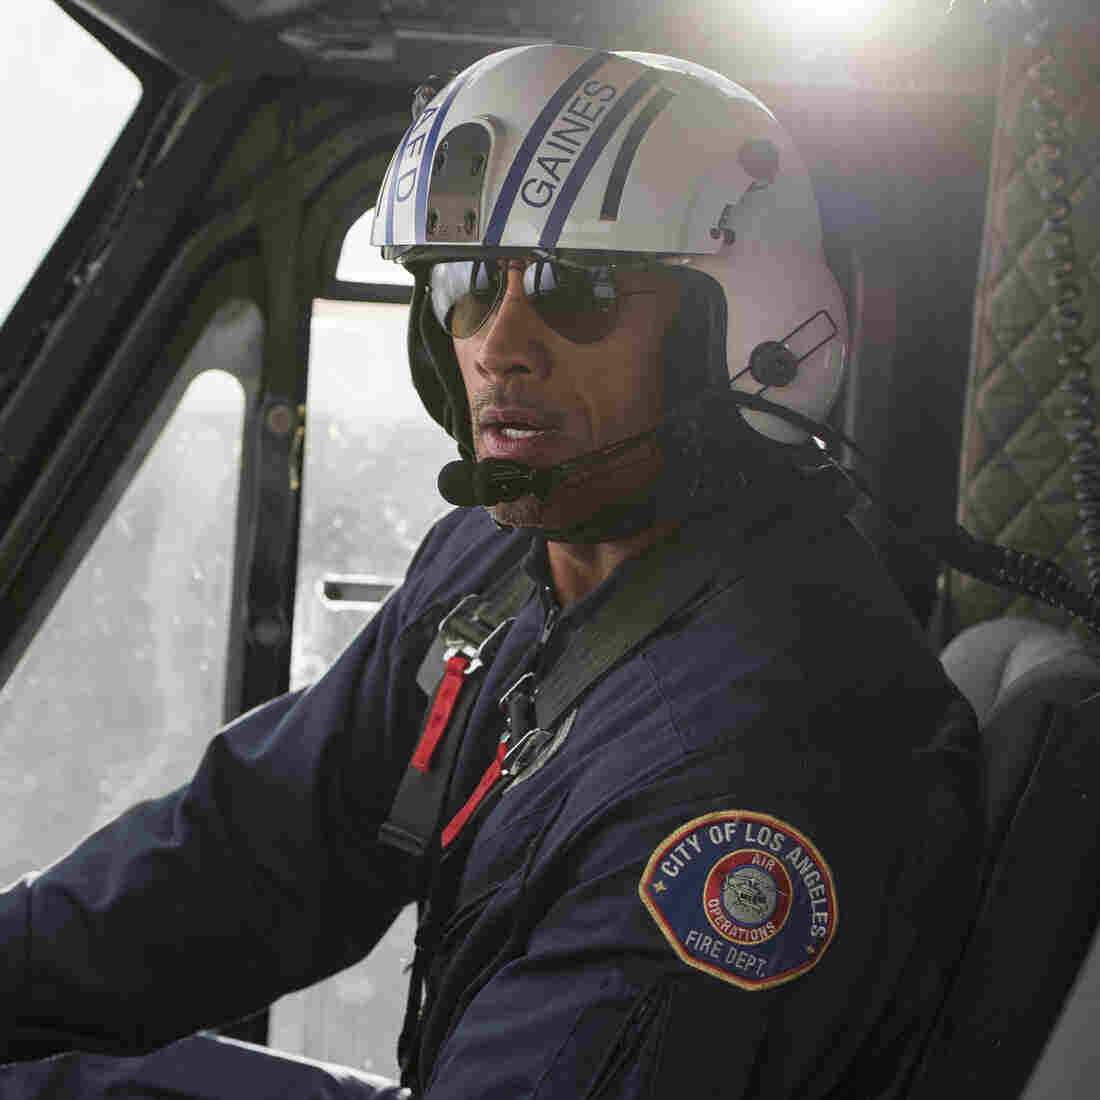 Rocks Versus The Rock In 'San Andreas'